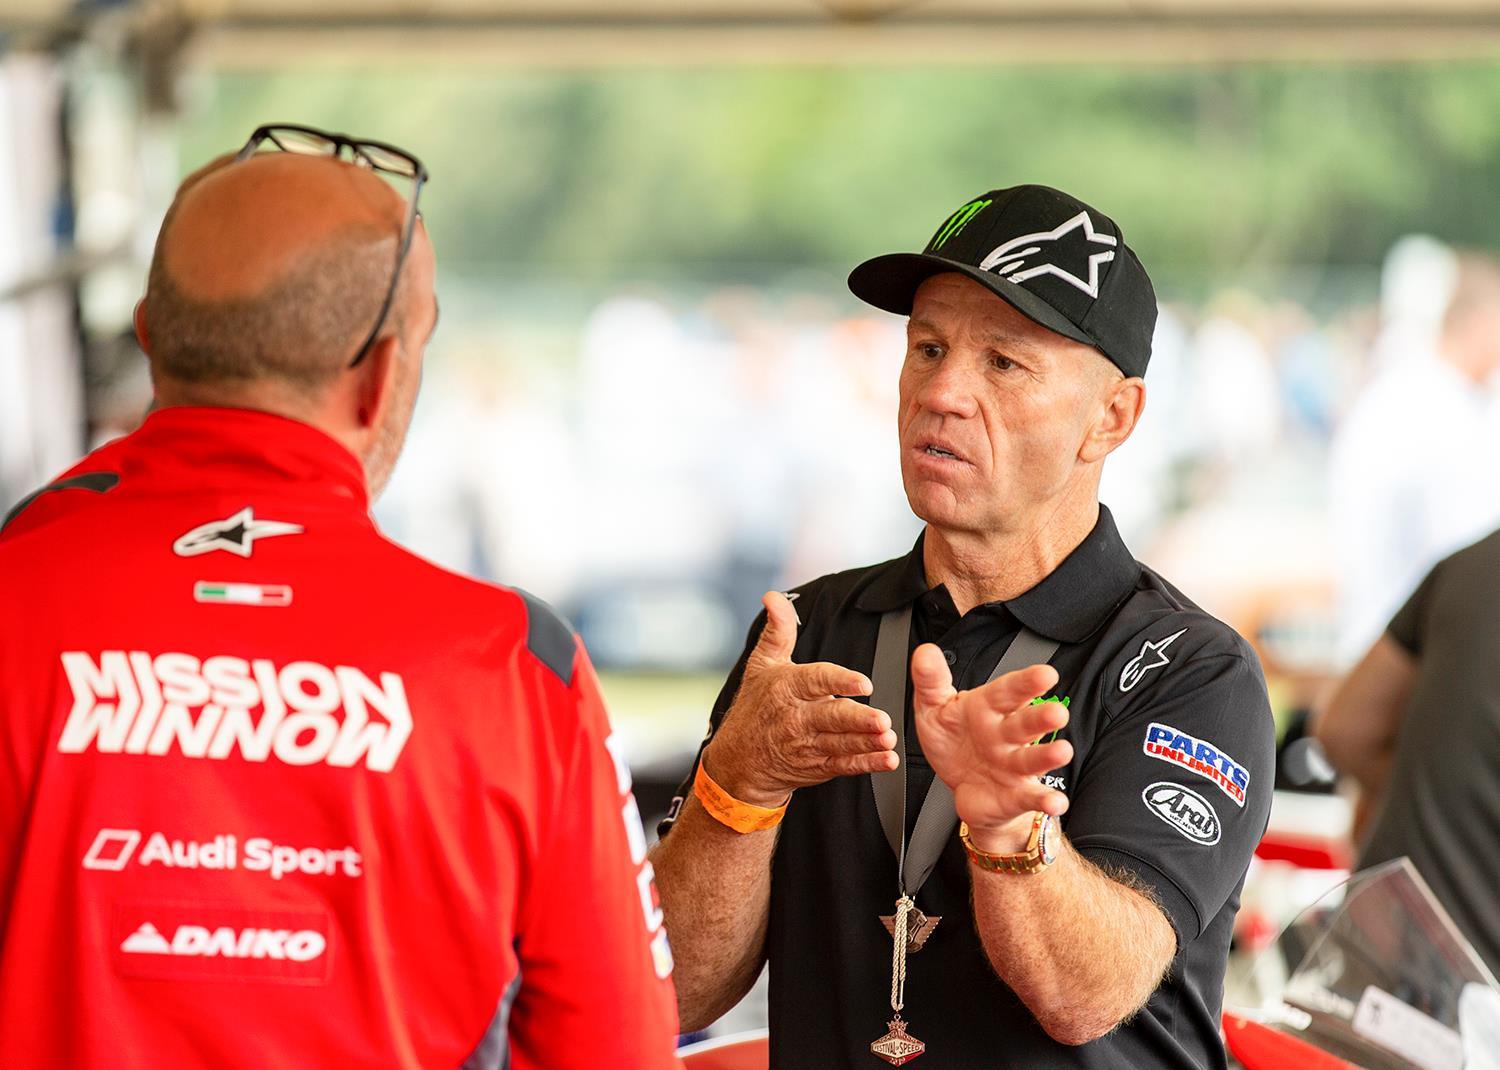 Randy Mamola discusses the Ducati Desmosedici GP12 two seater